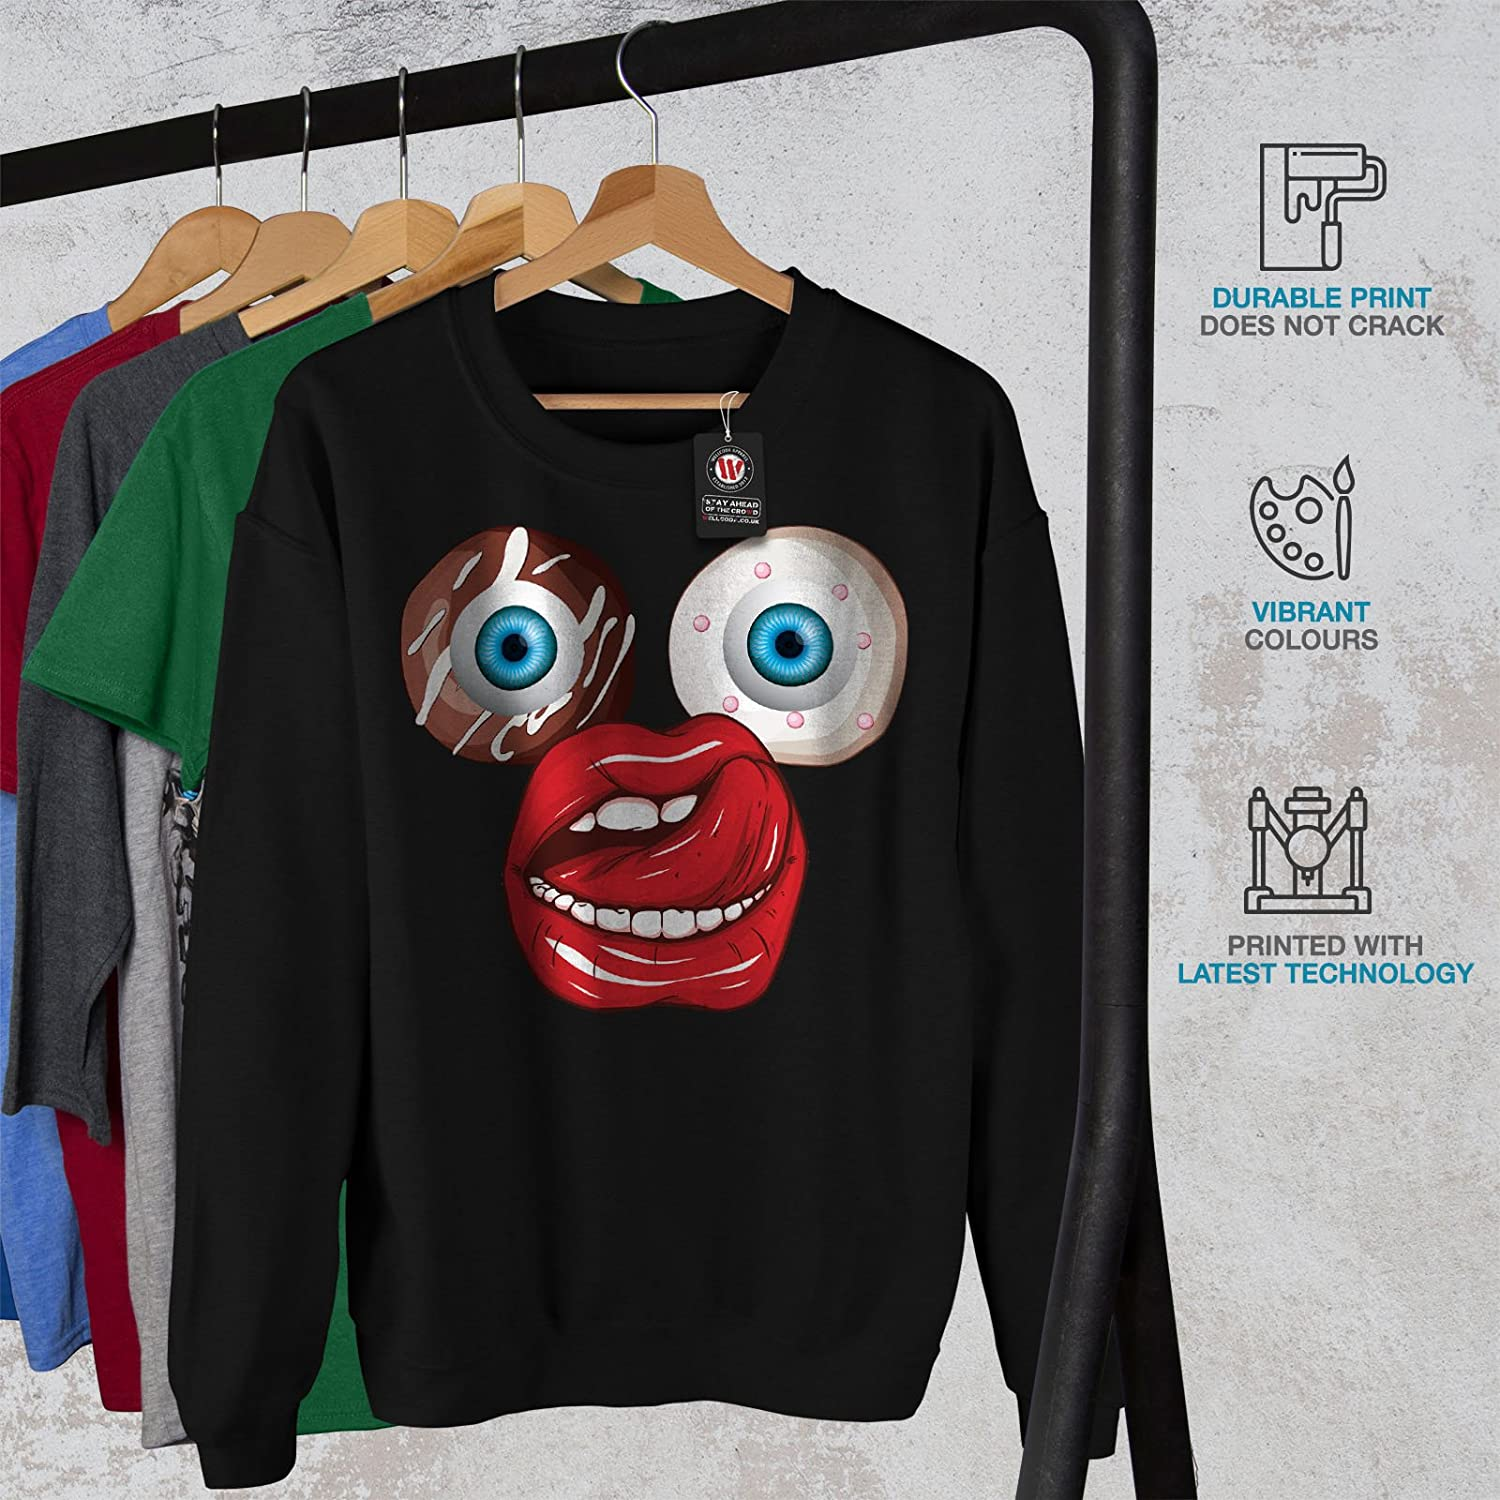 Sweet Casual Jumper wellcoda Donut Eye Junk Weird Mens Sweatshirt